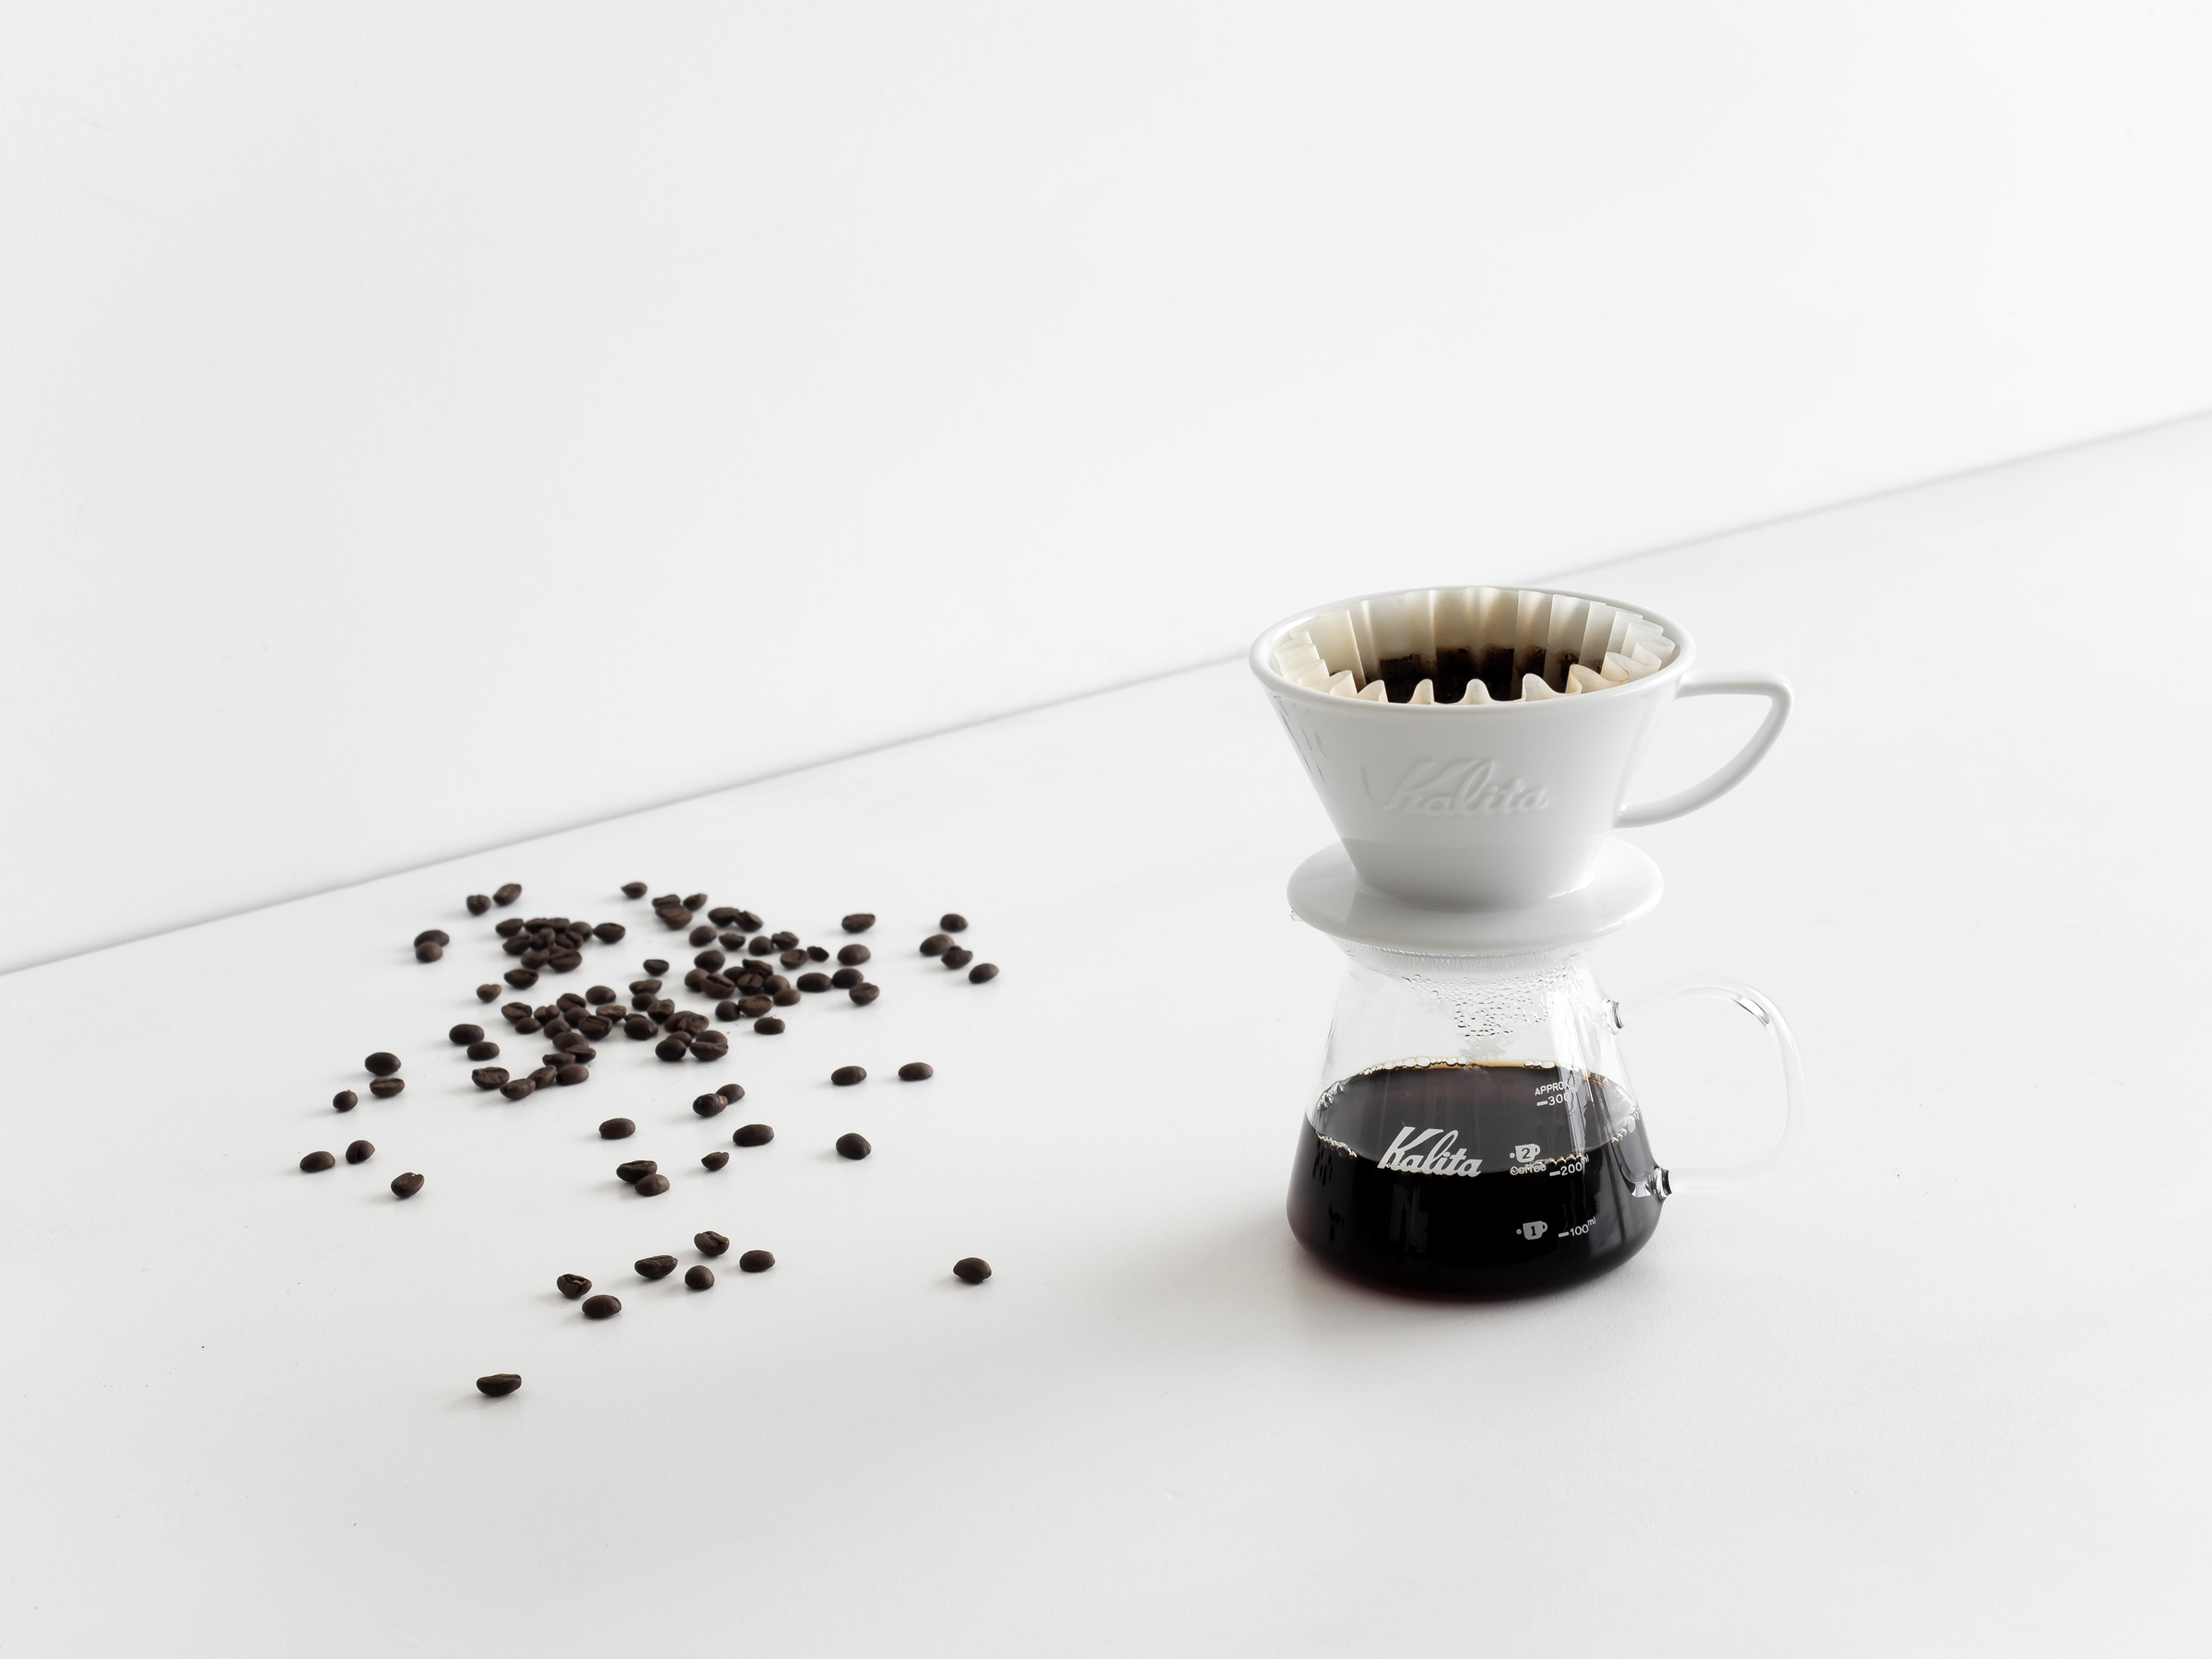 Guide To Pour Over Coffee | How To Make Pour Over Coffee - HEY GENTS Magazine - Kalita Filter Cone and Glass Server